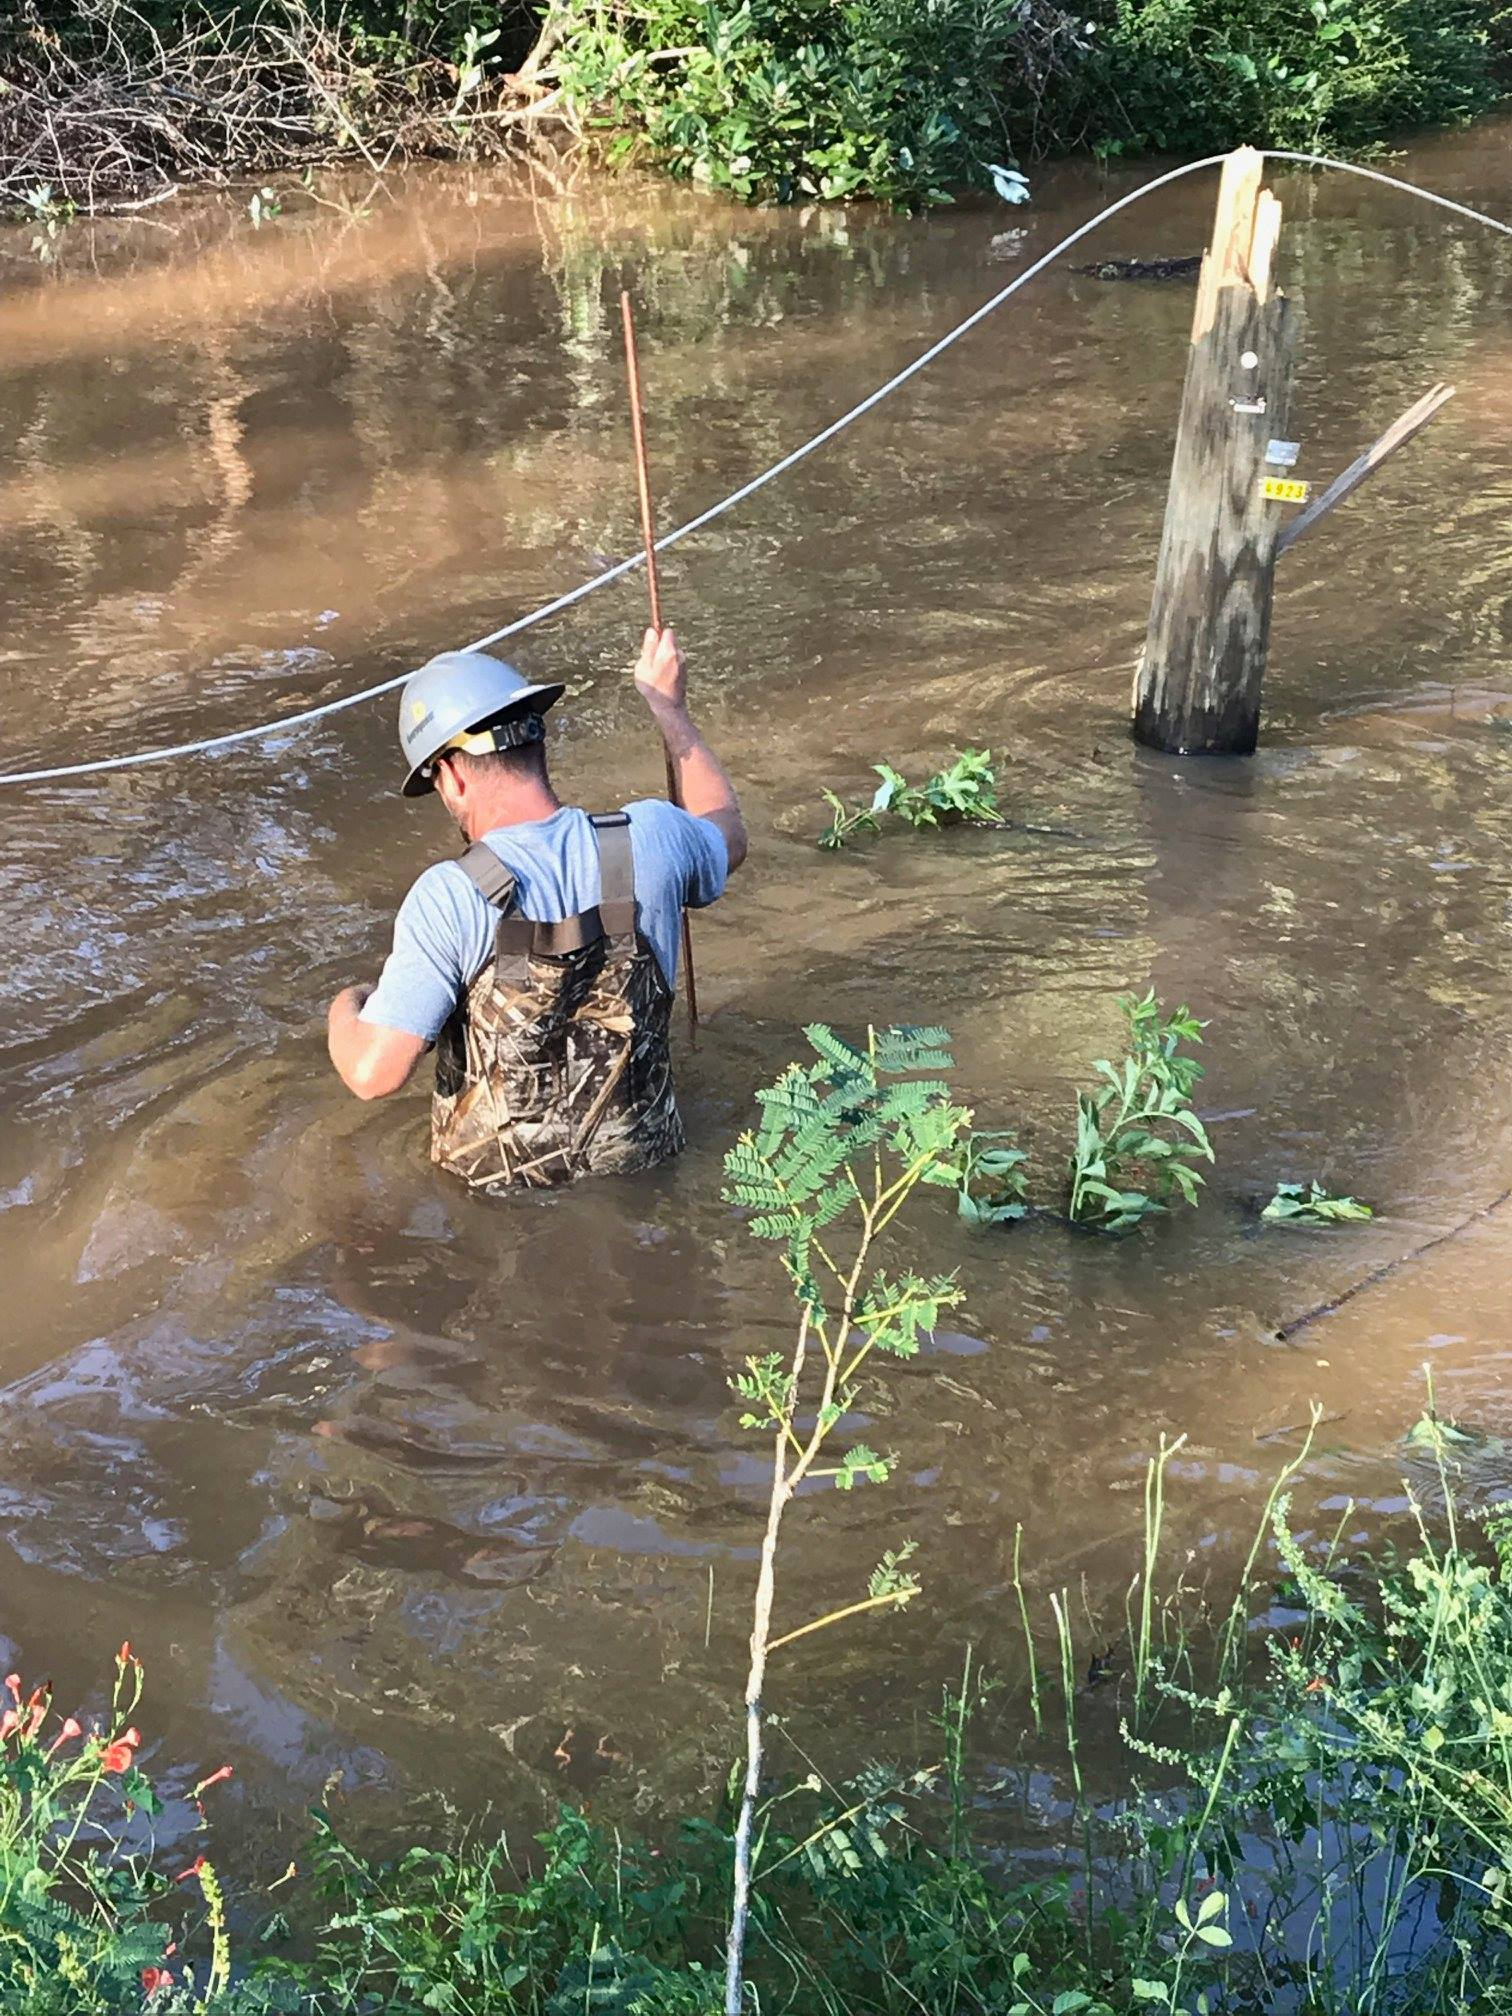 Diverse Power and assisting crews battled all sorts of obstacles while restoring power following Hurricane Michael, including wading through swamps to repair lines.